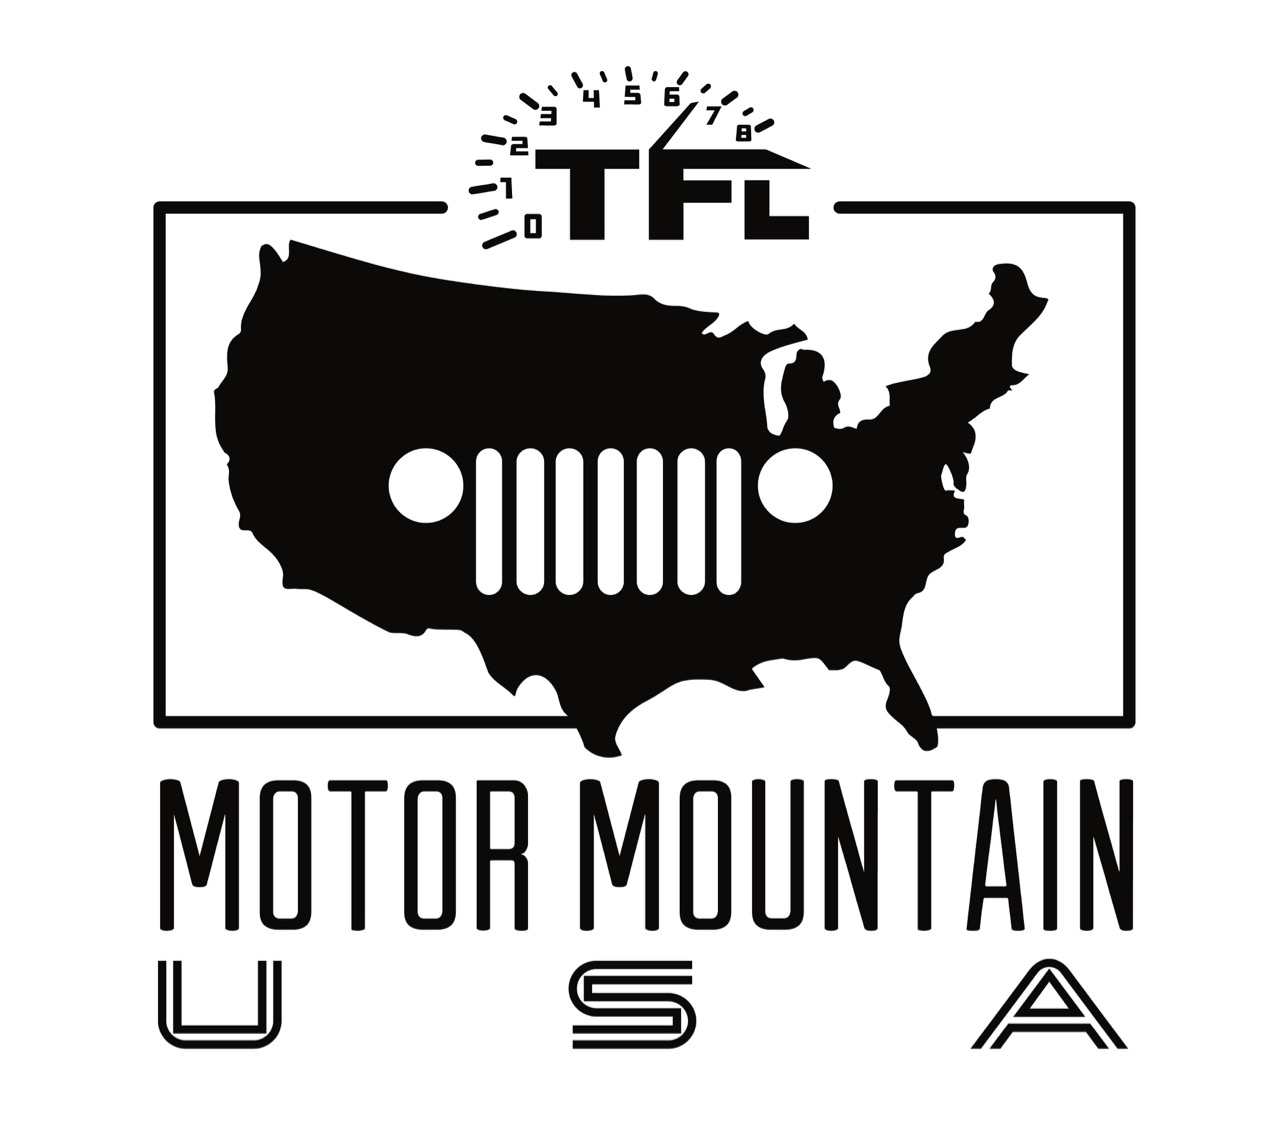 Motor Mountain USA logo